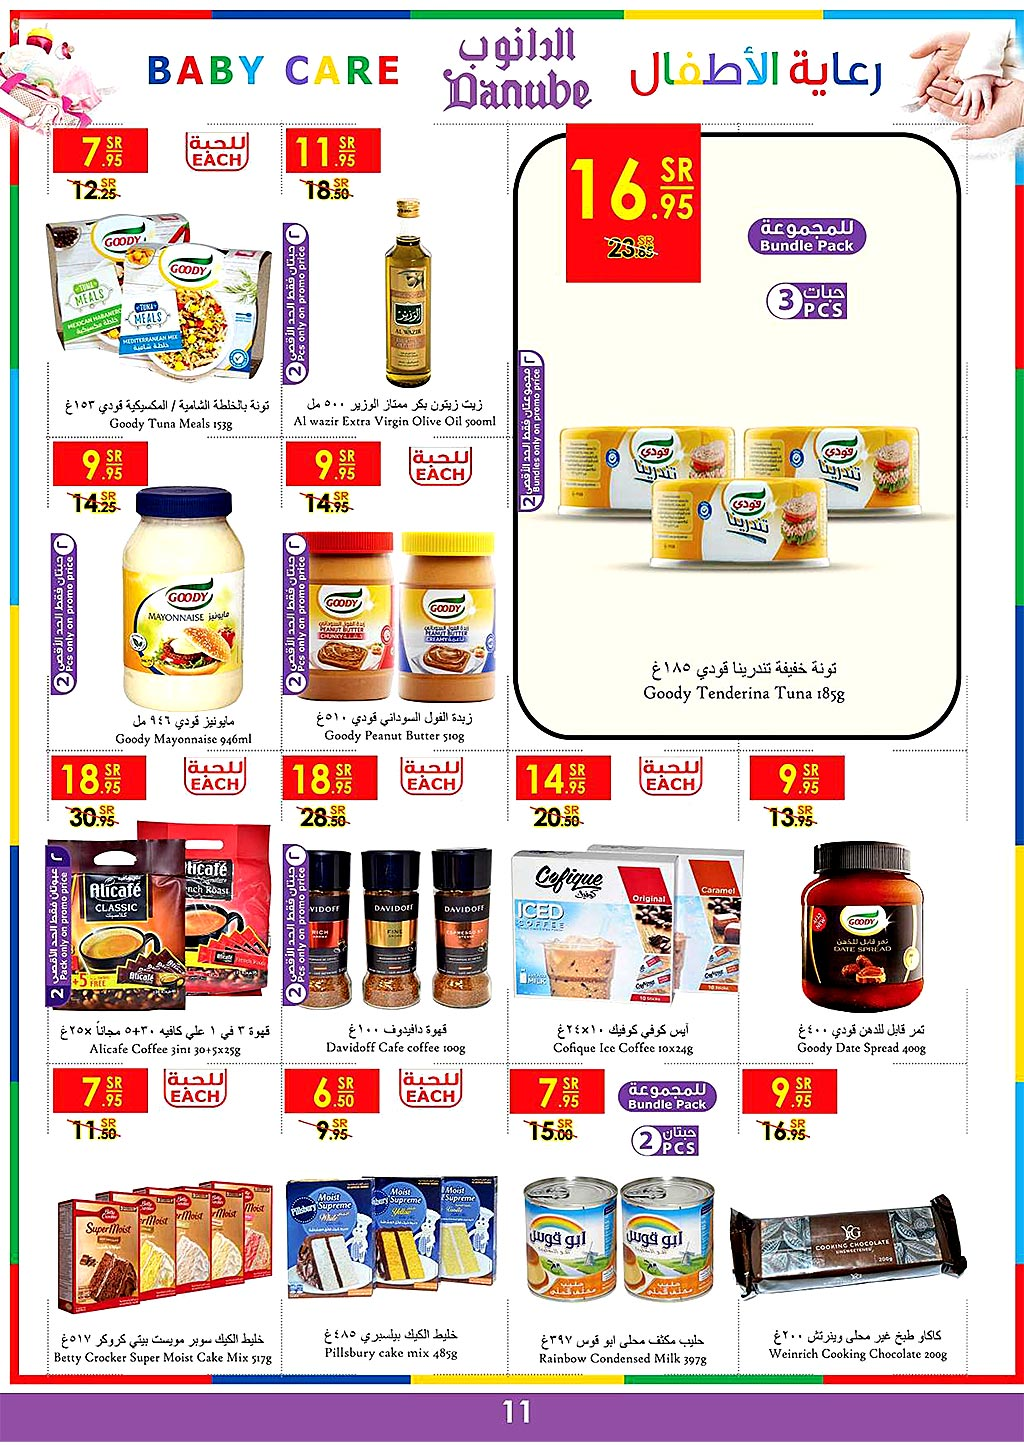 danube offers from 24july to 30july 2019 page number 10 عروض الدانوب من 24 يوليو حتى 30 يوليو 2019 صفحة رقم 10